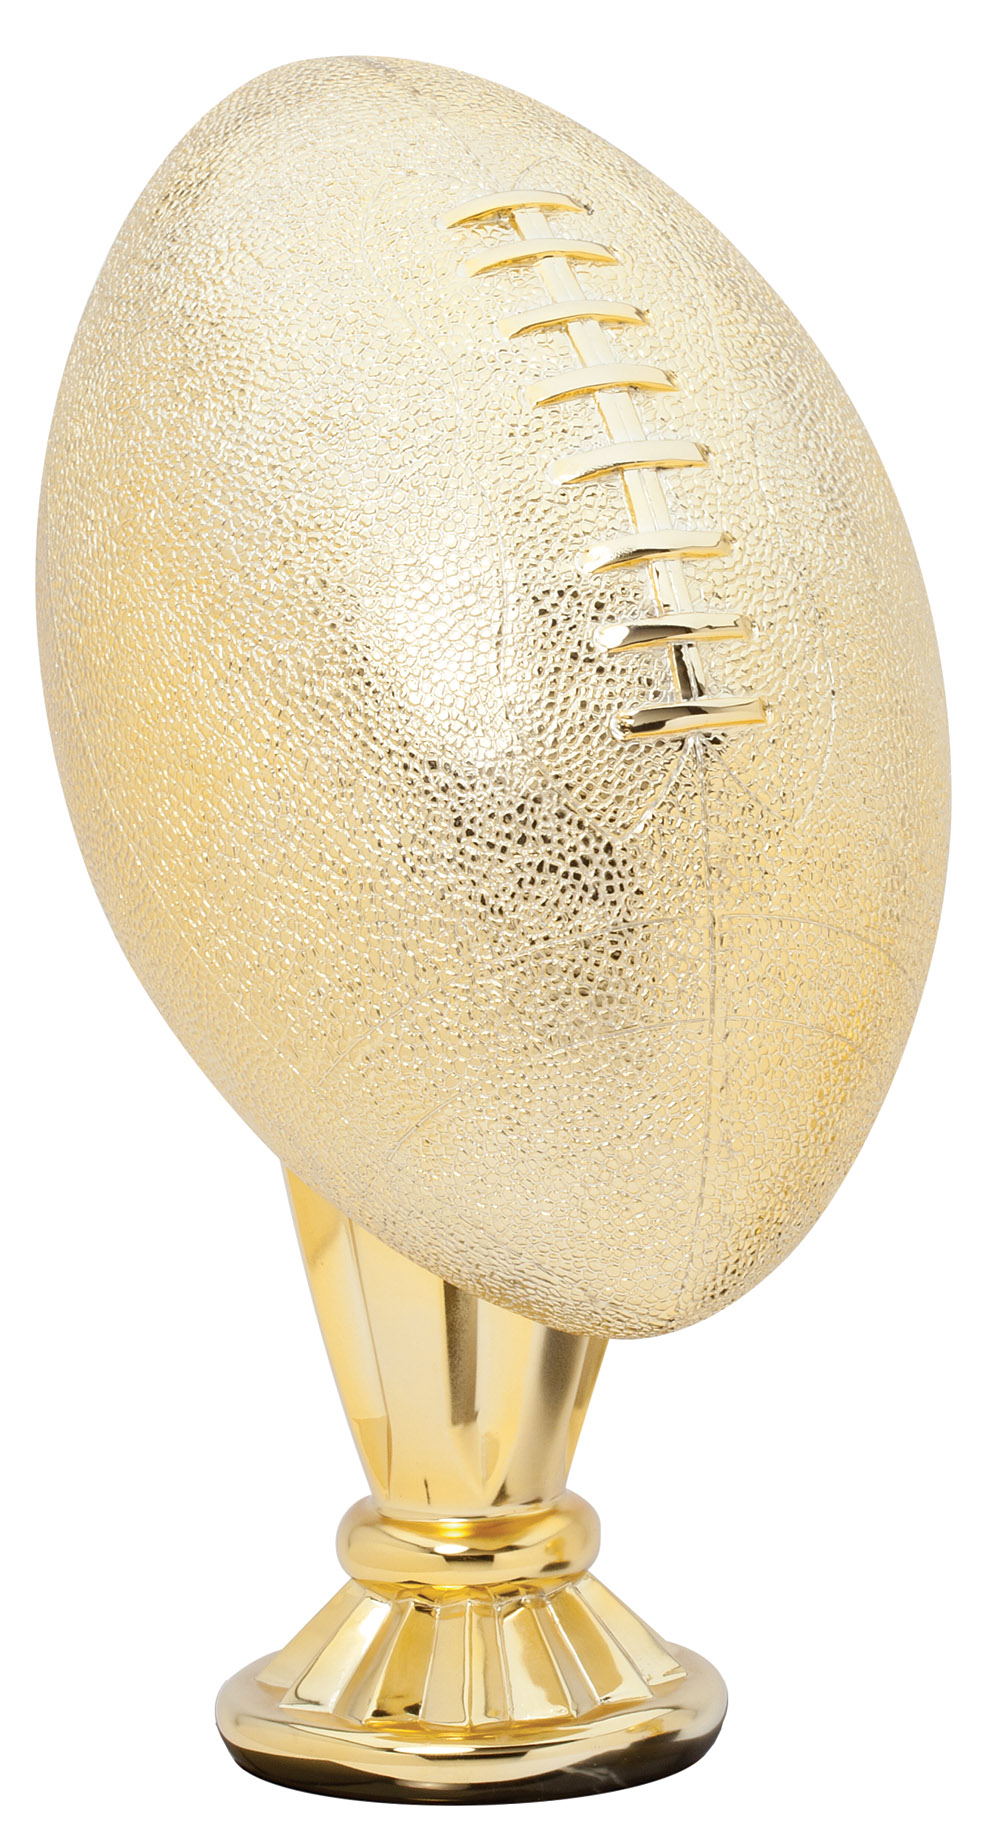 "Football - Gold   RG3106 - 12"" tall  Price = $109"